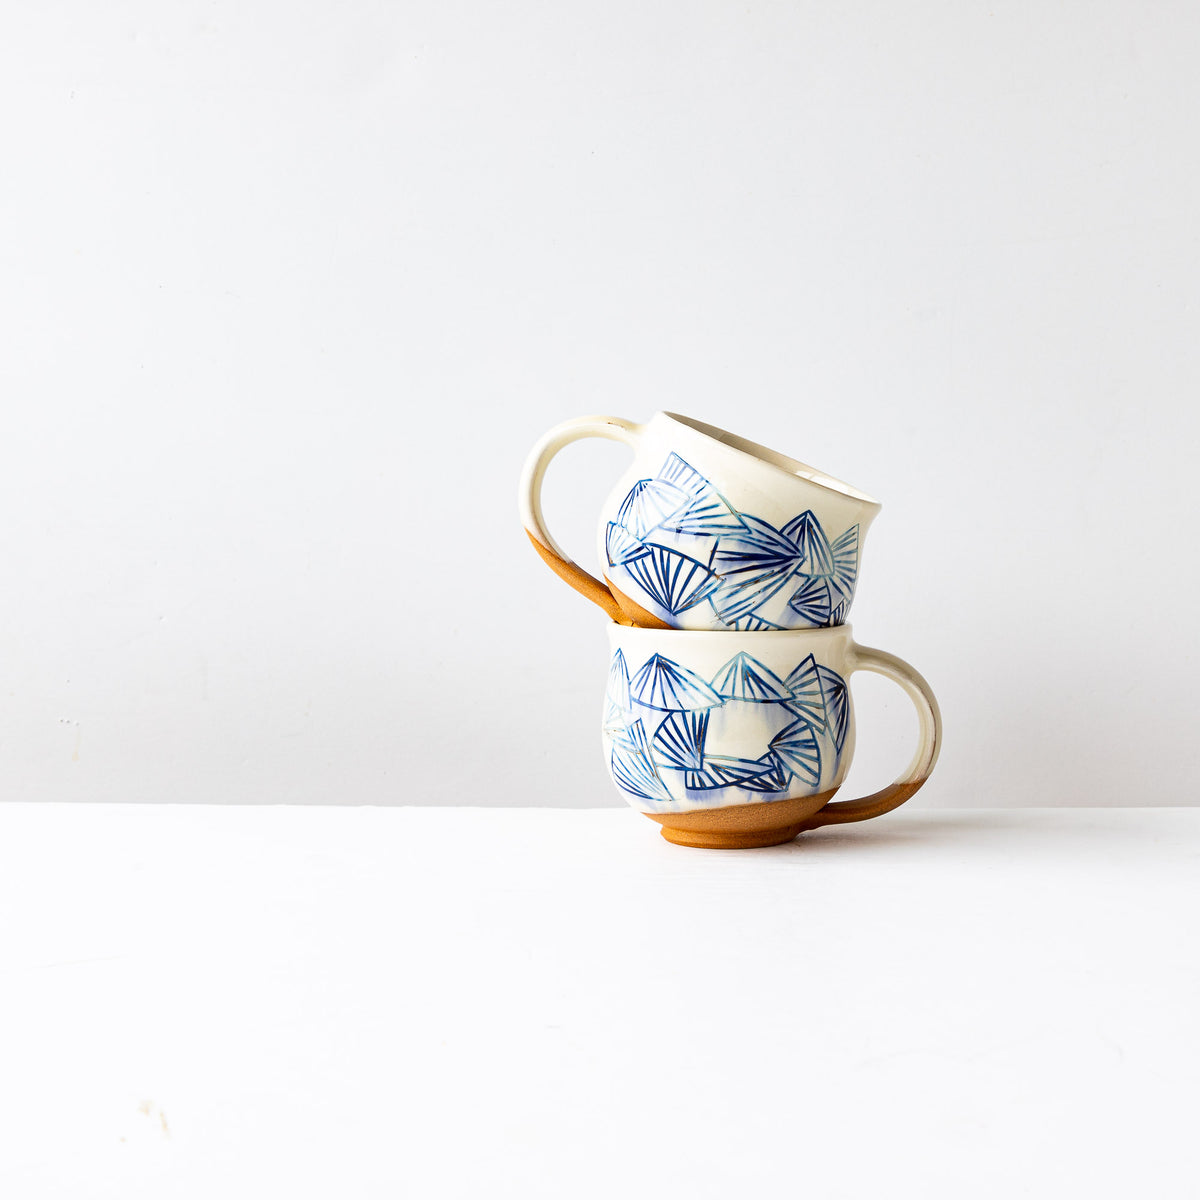 Blue Pattern - Handmade Mishima Round Mugs With Folding Fan Pattern - Sold by Chic & Basta